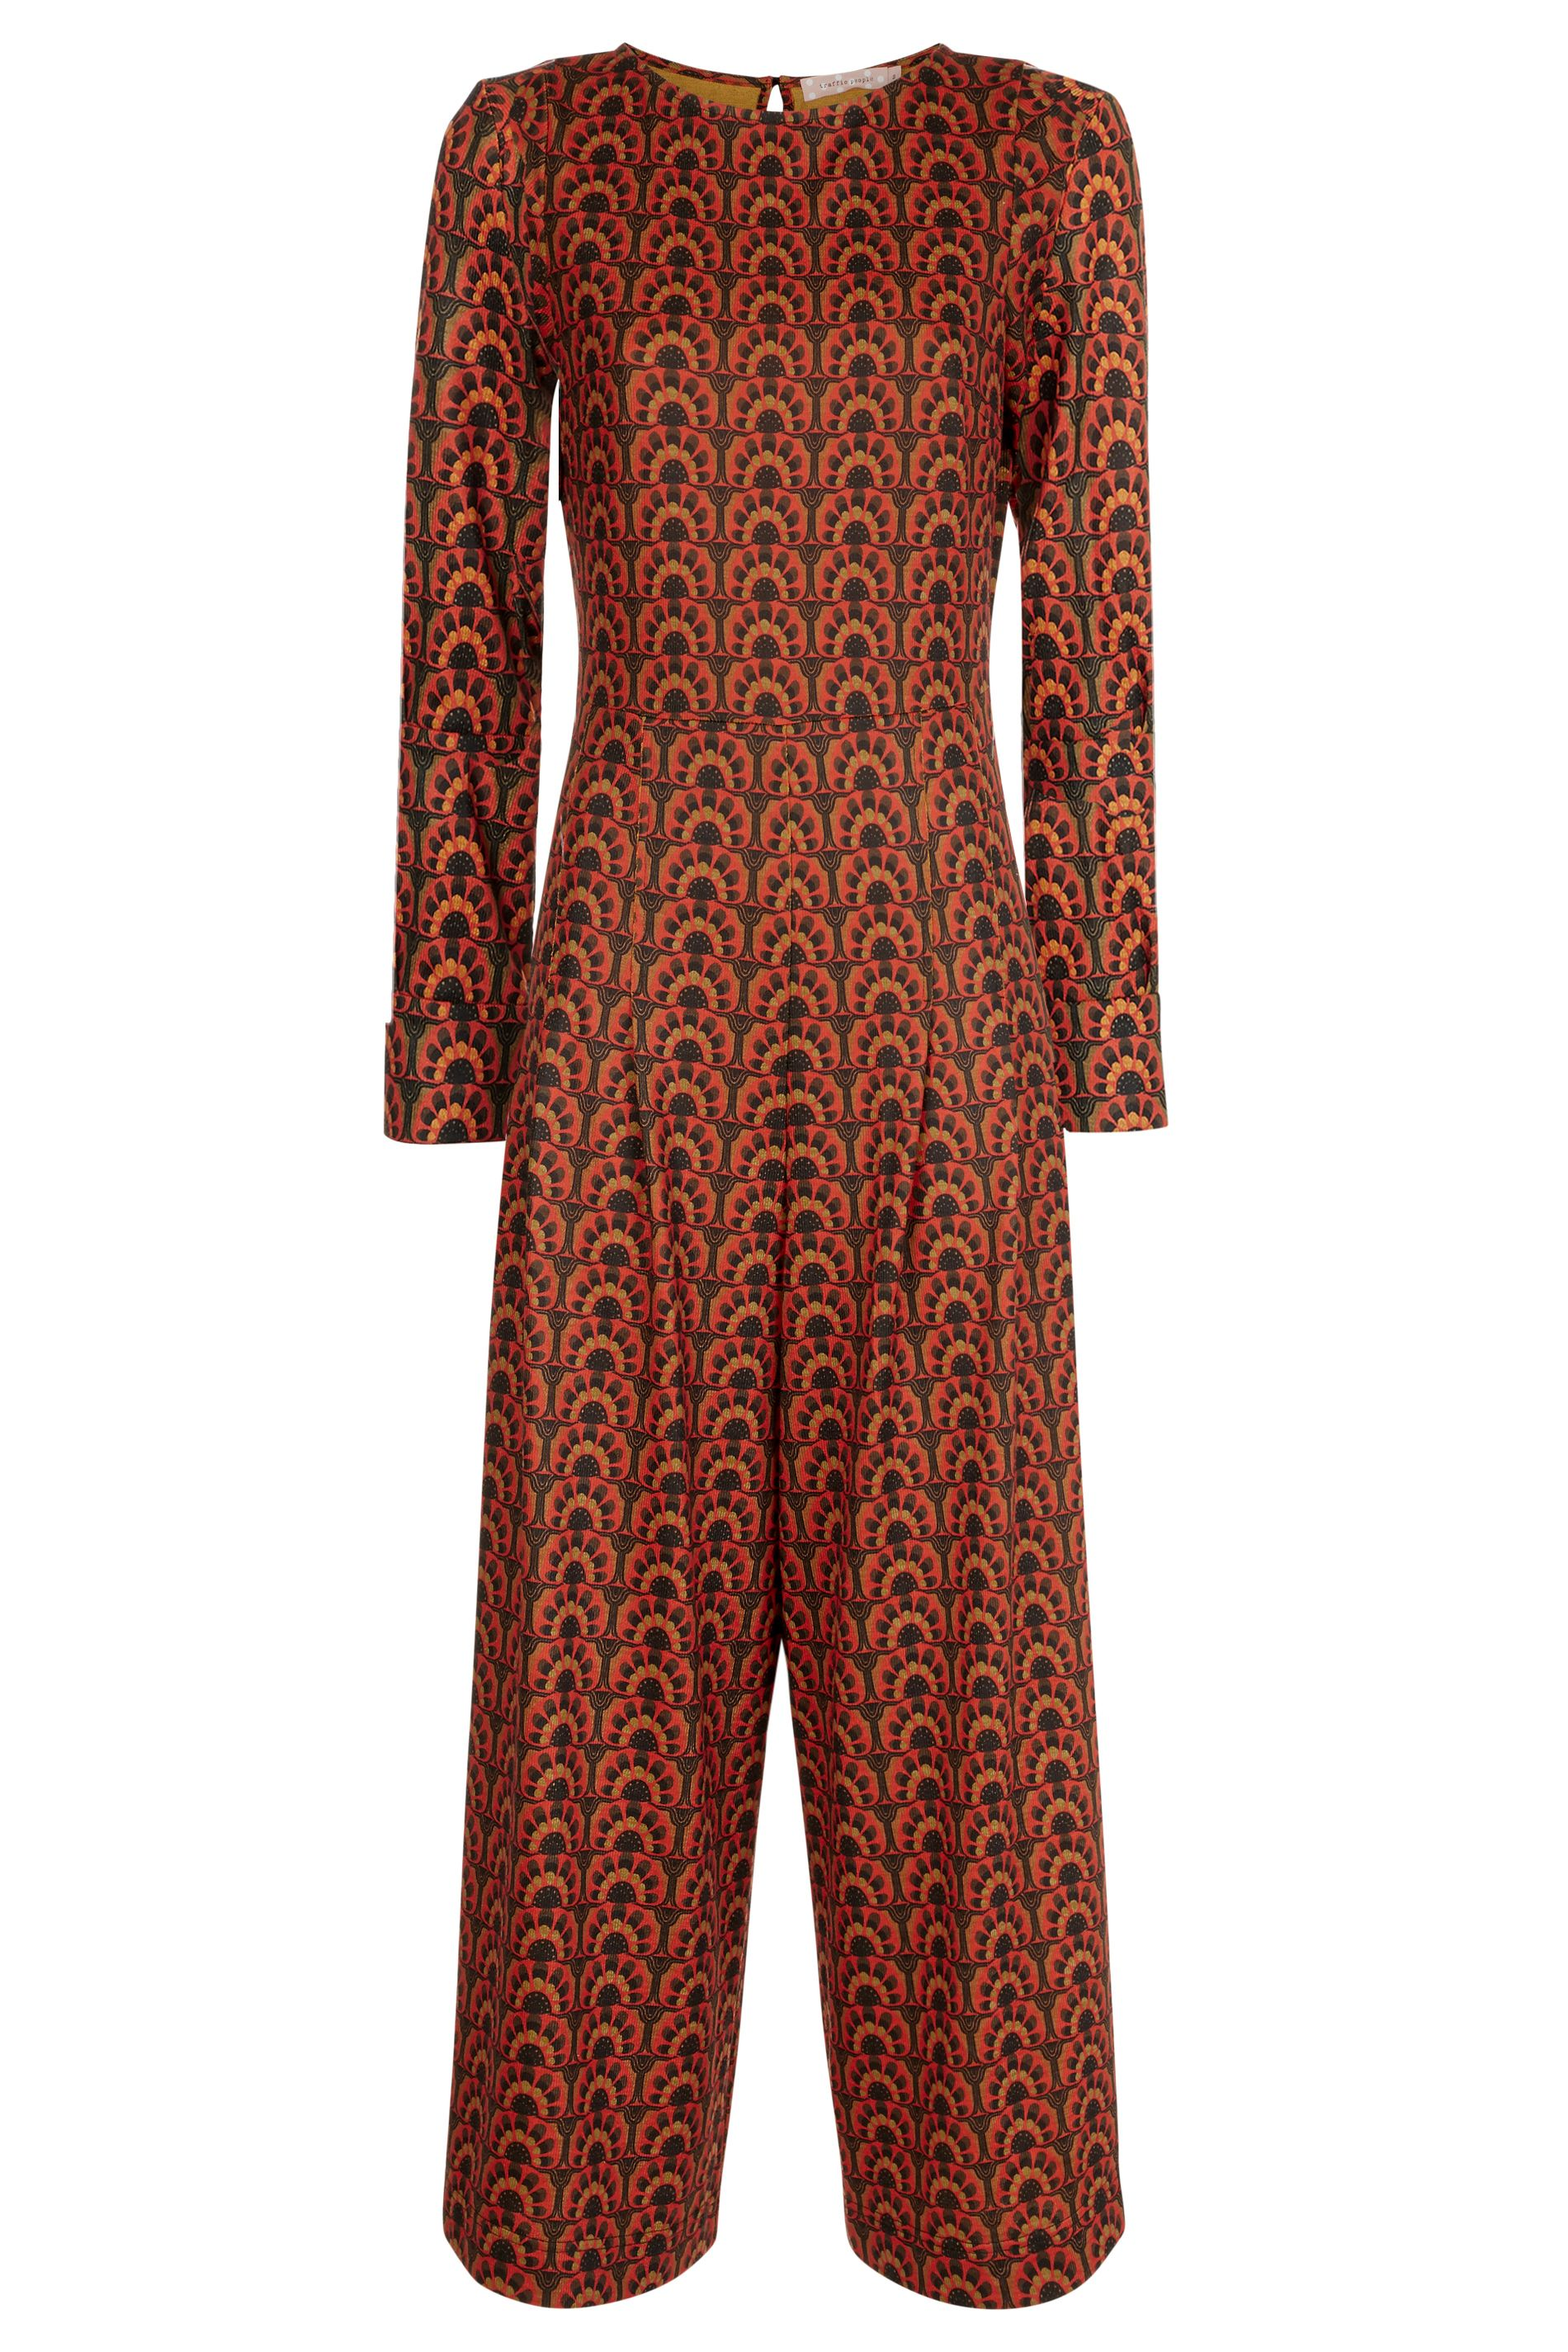 Jagger Printed Long Sleeve Jumpsuit in Orange and Green